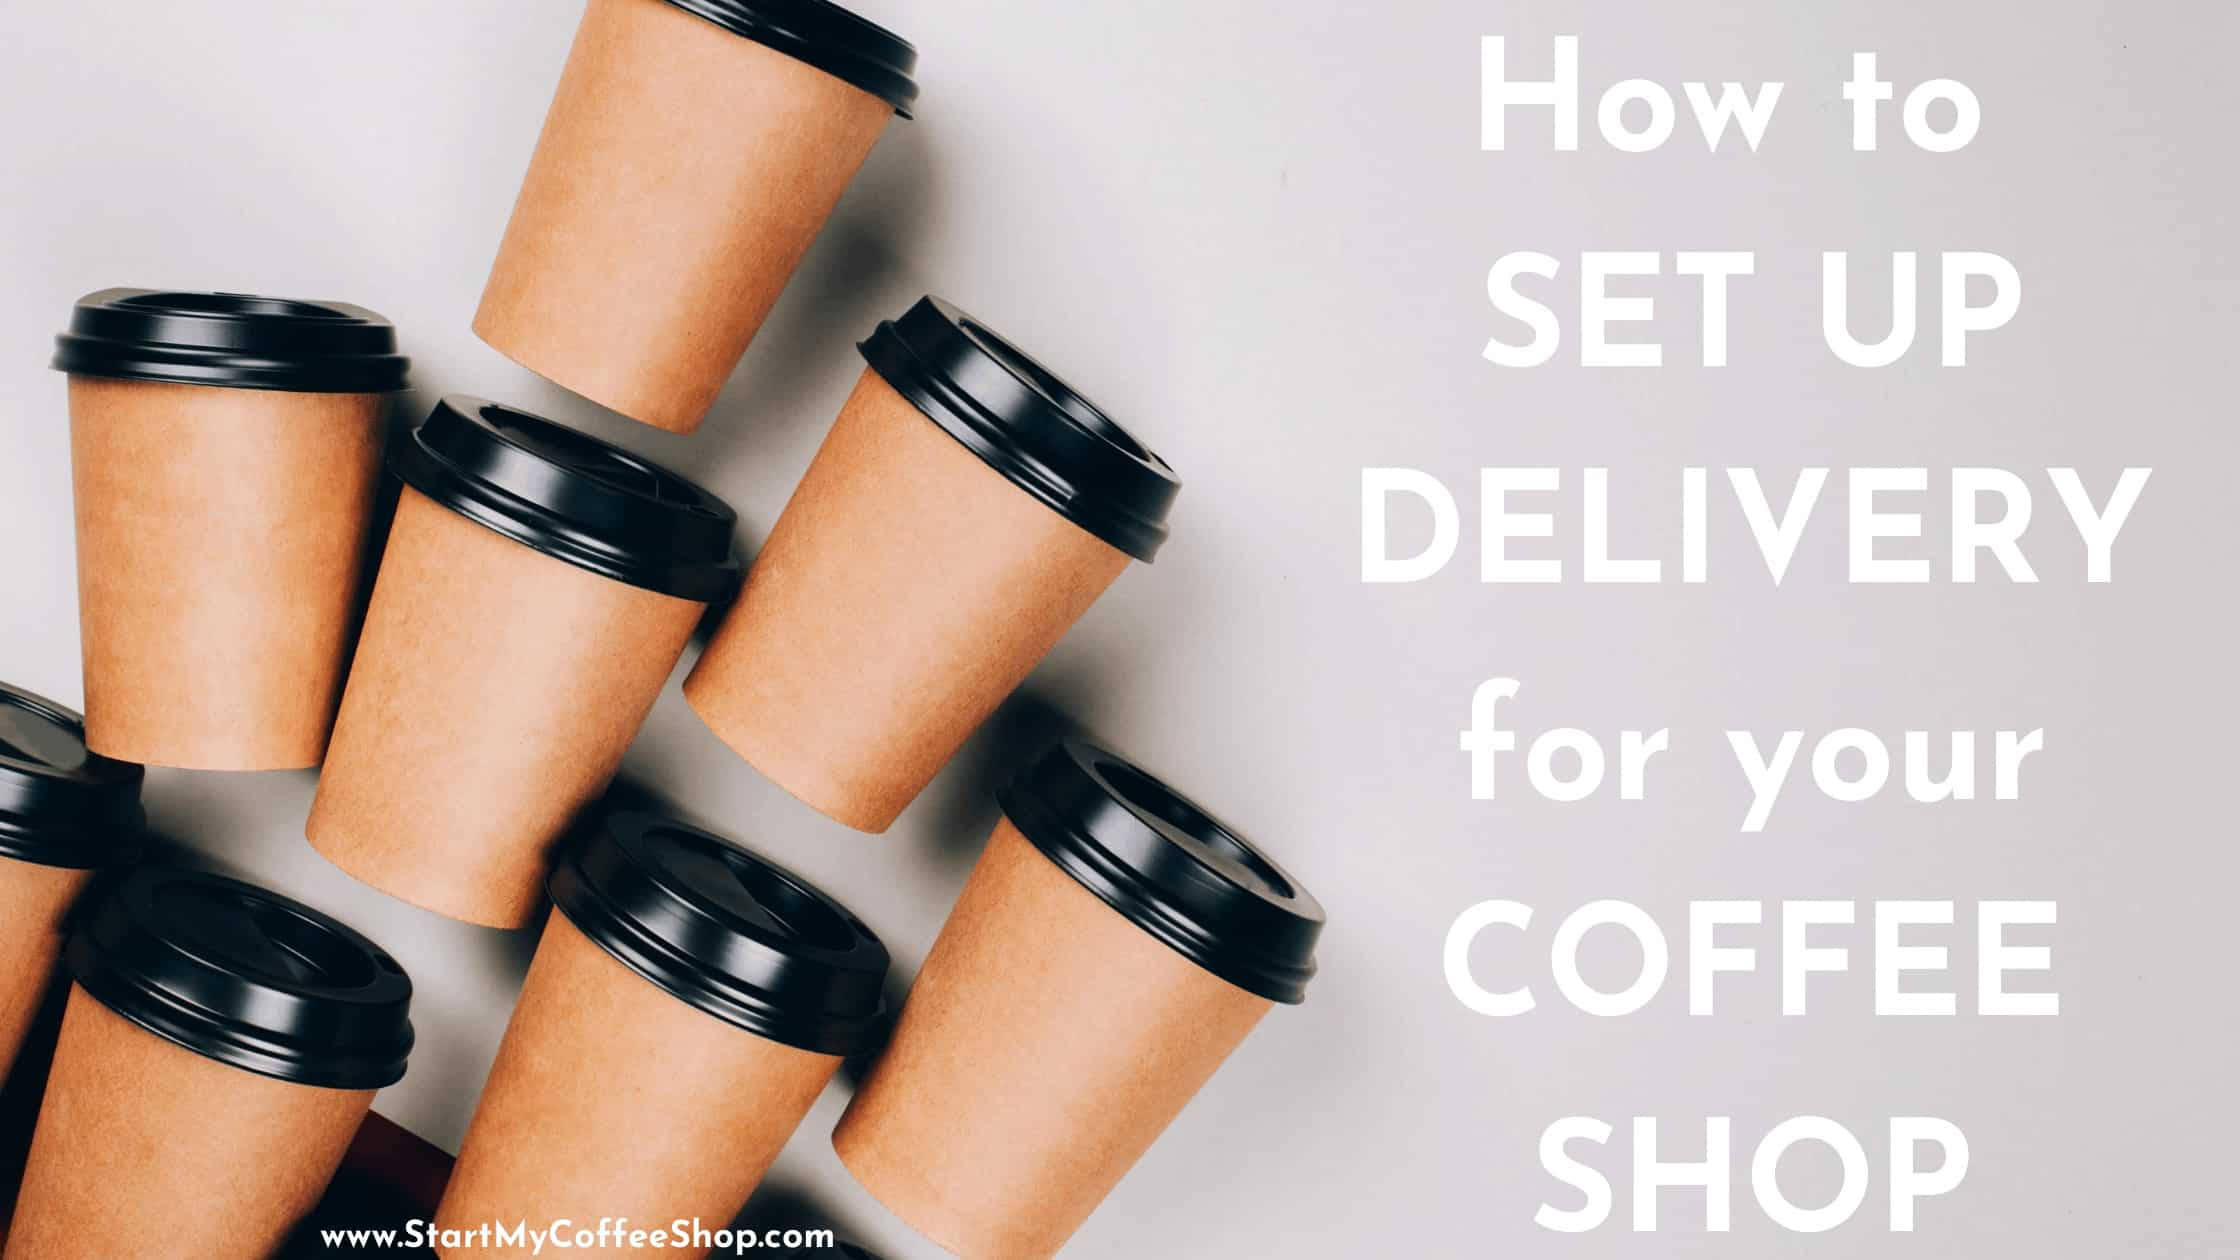 How to set up delivery for your coffee shop